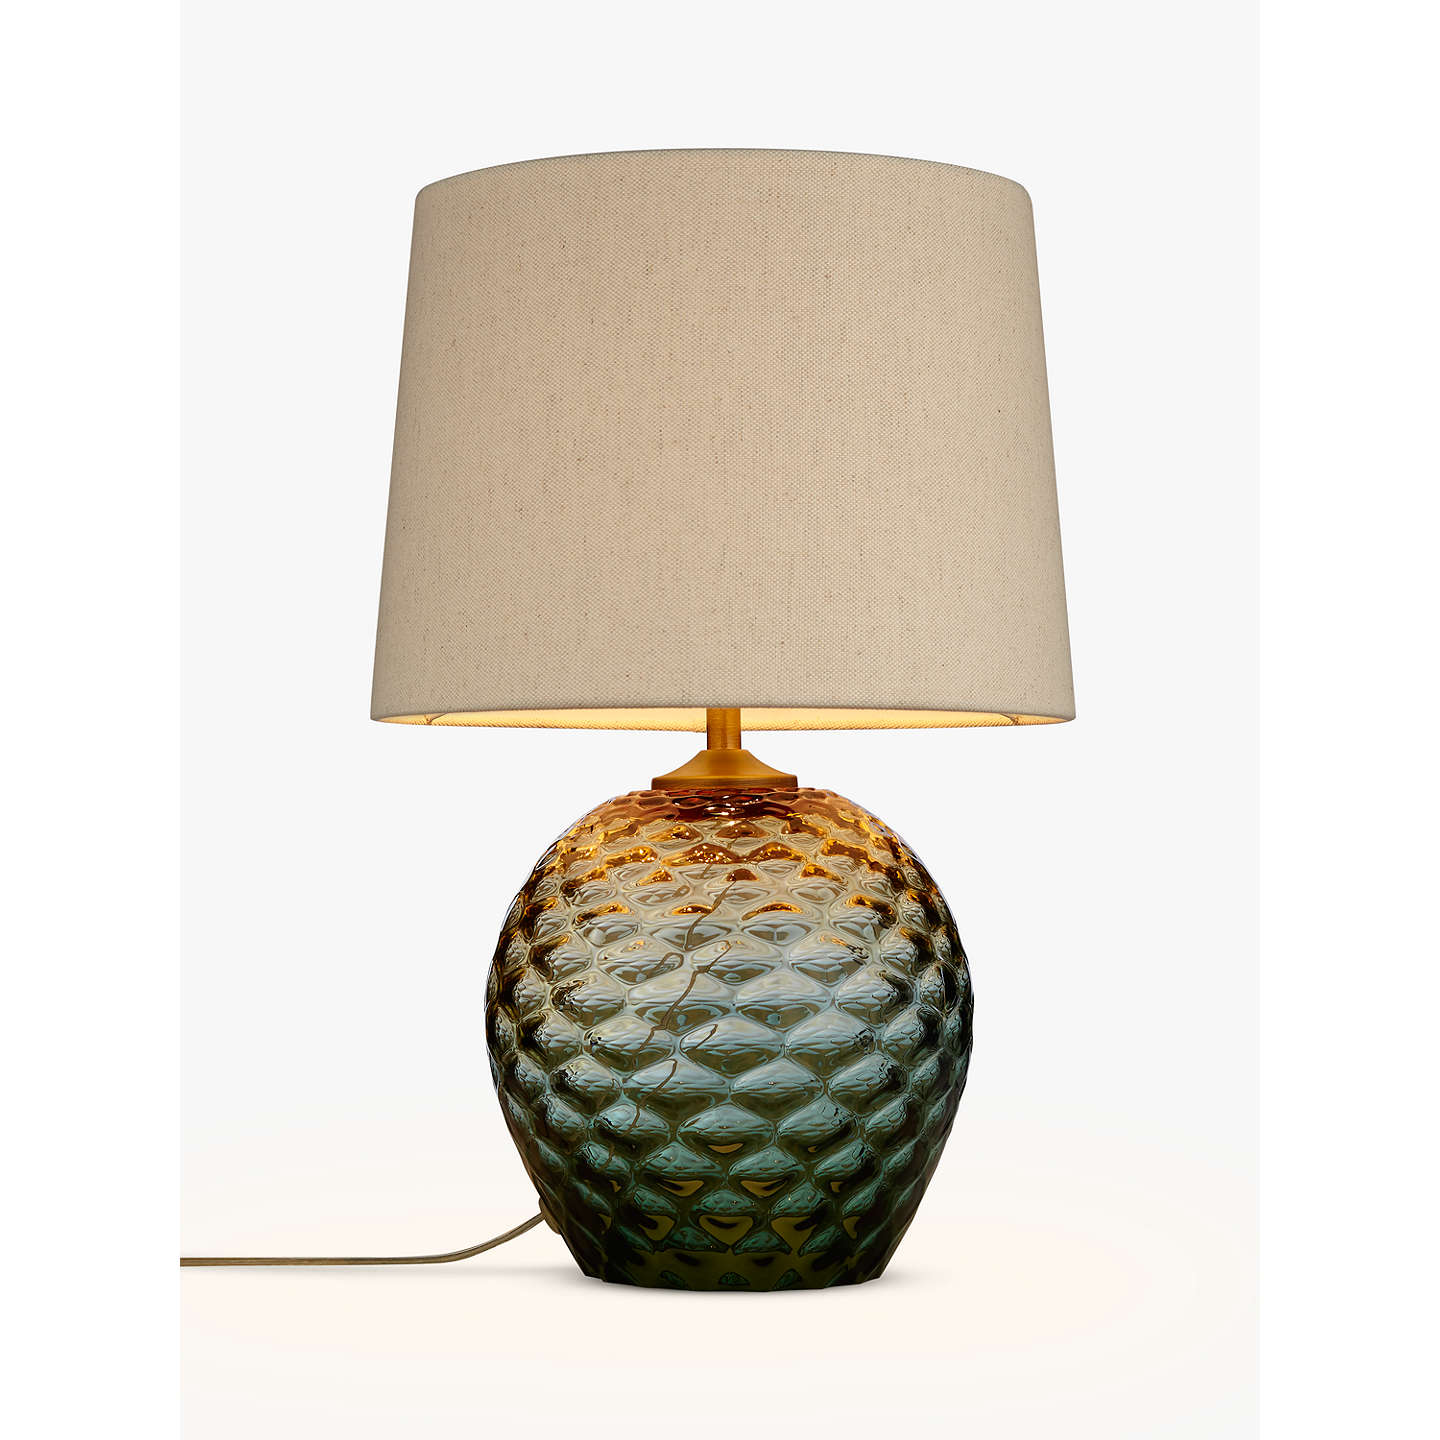 John lewis abigail dimple ombre table lamp green at john lewis buyjohn lewis abigail dimple ombre table lamp green online at johnlewis aloadofball Gallery